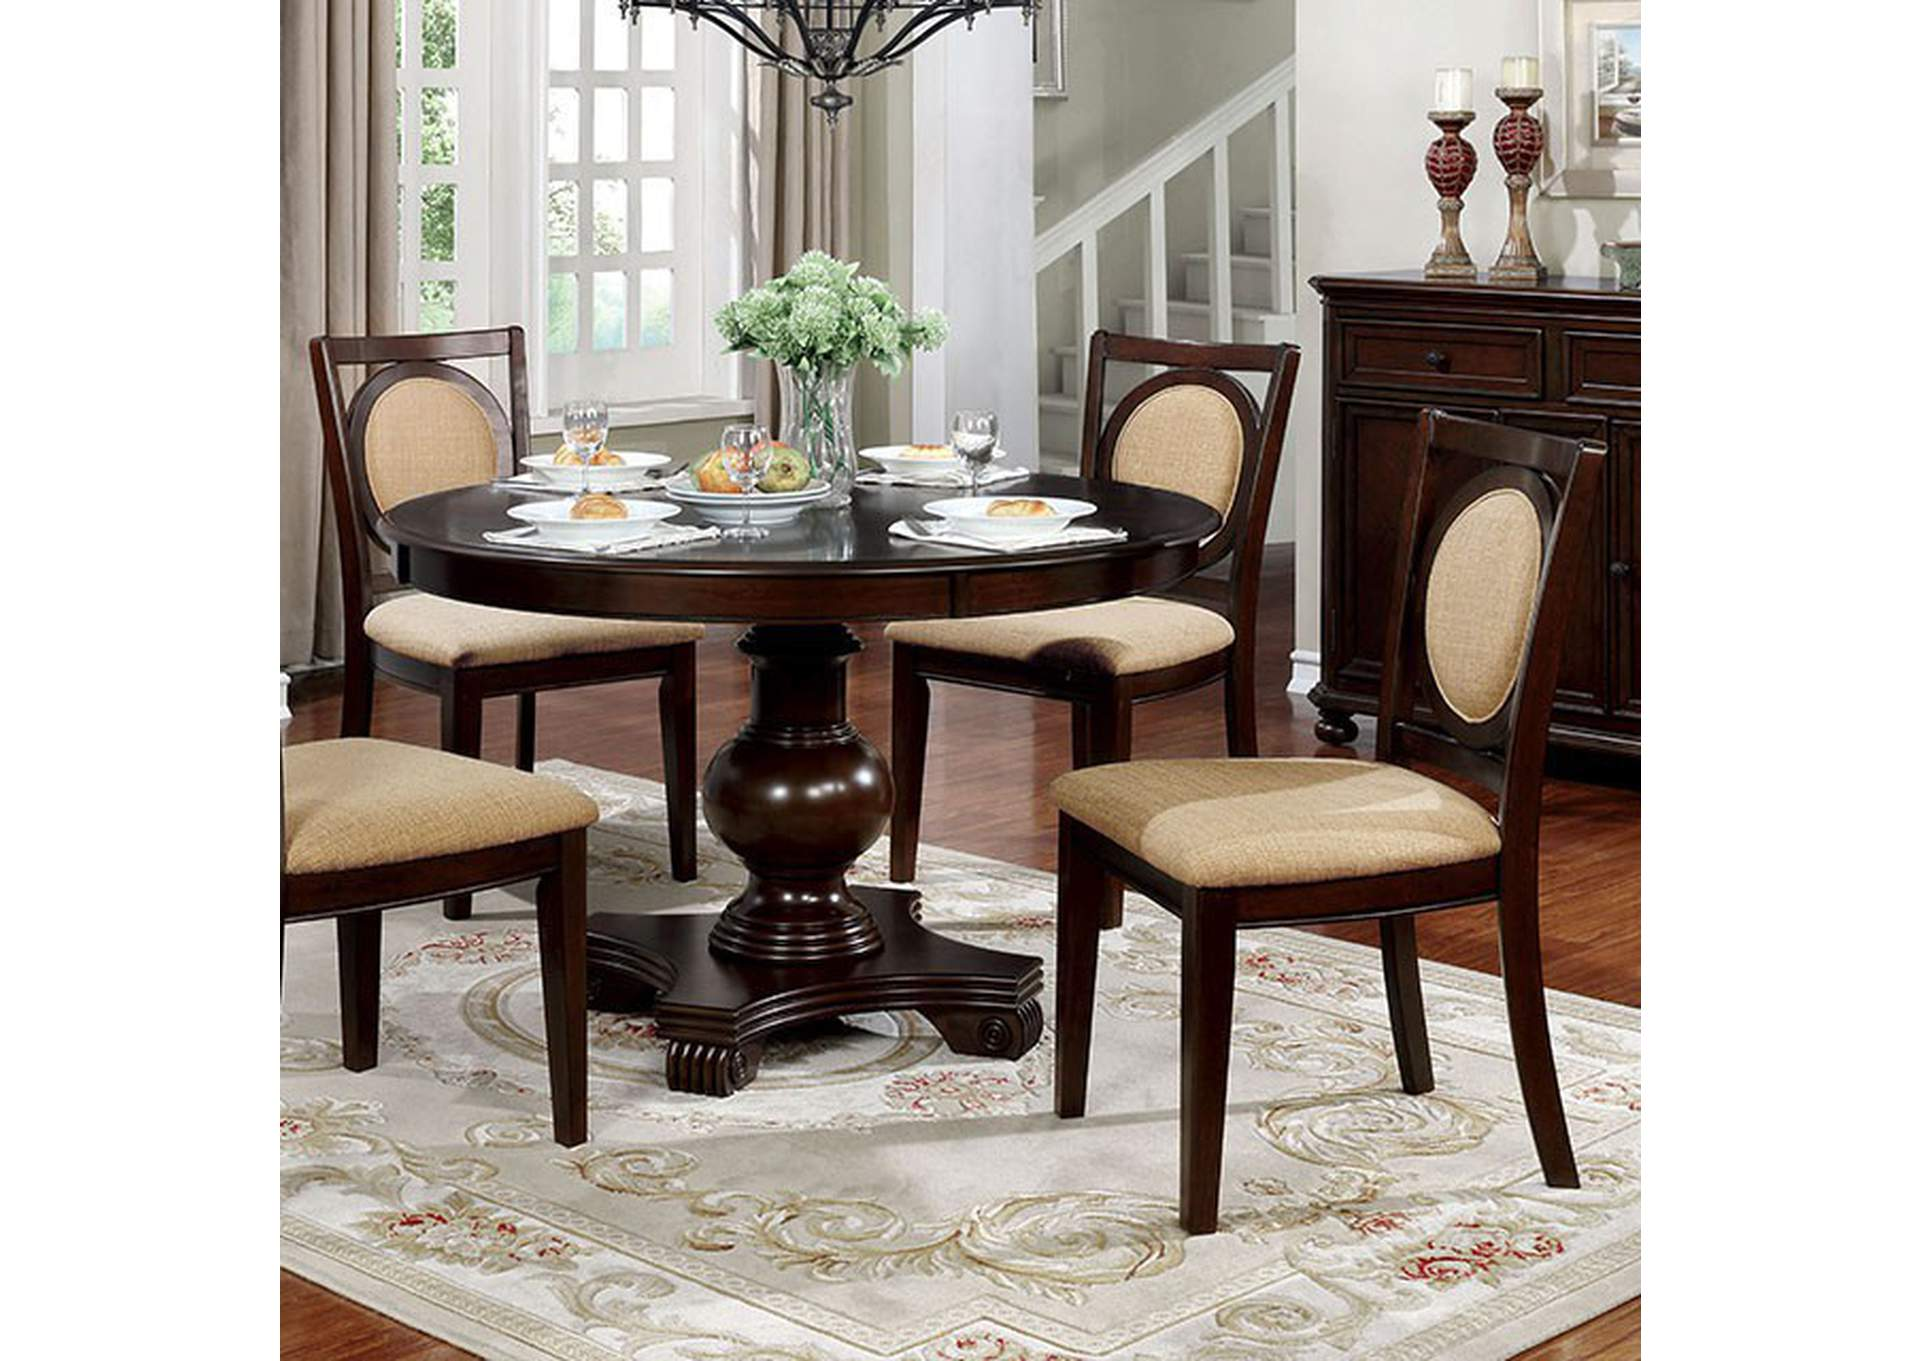 Abergele Round Dining Table,Furniture of America